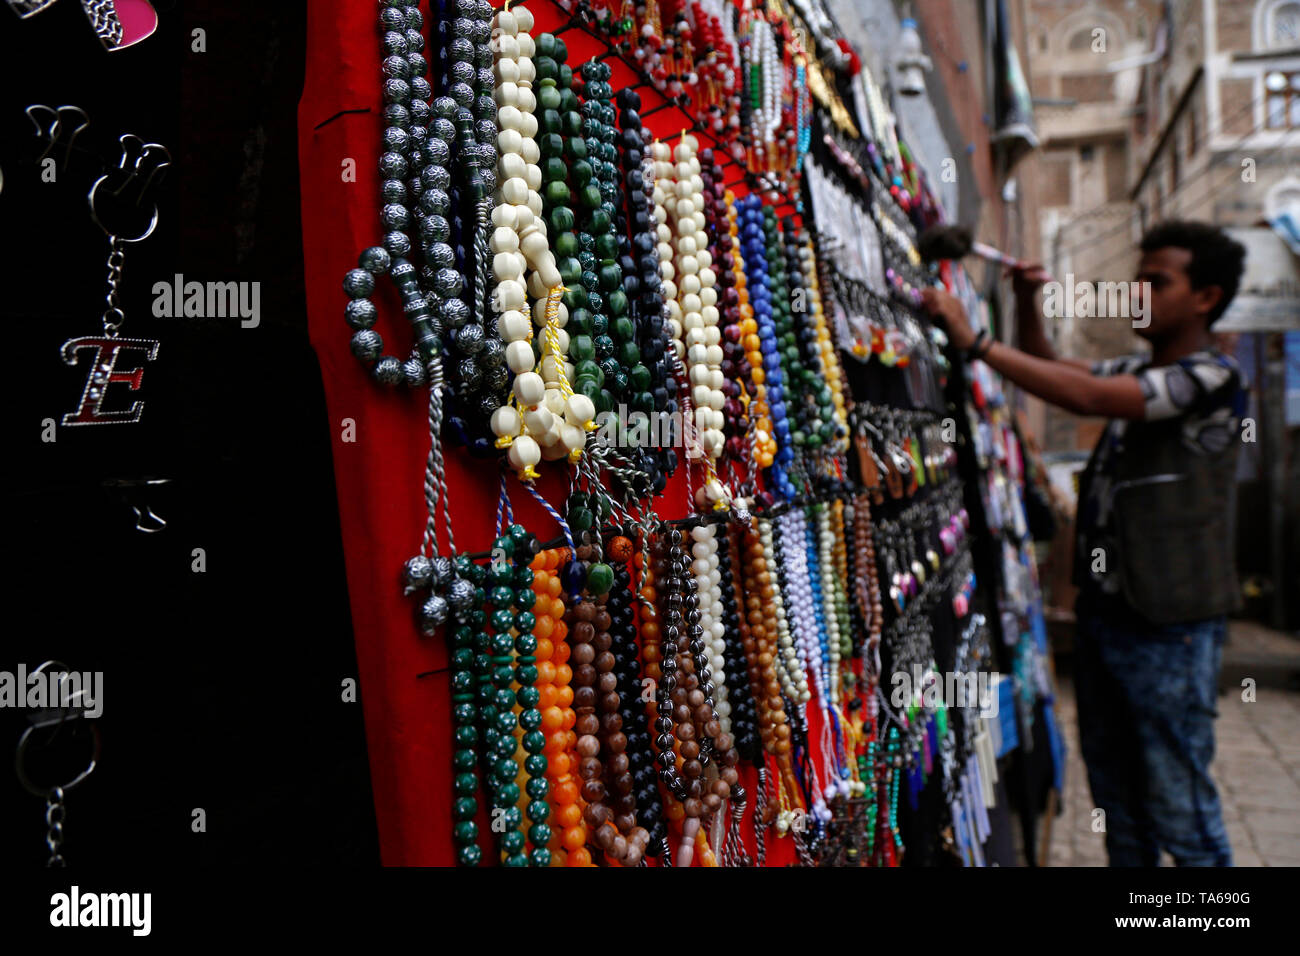 Sanaa, Yemen. 22nd May, 2019. A vendor prepares rosaries for sale during the Muslim holy month of Ramadan in Sanaa, Yemen, on May 22, 2019. Rosary, or Tesbih, is a small string of prayer beads that is carried by many Yemeni men during the holy month of Ramadan. Credit: Mohammed Mohammed/Xinhua/Alamy Live News - Stock Image